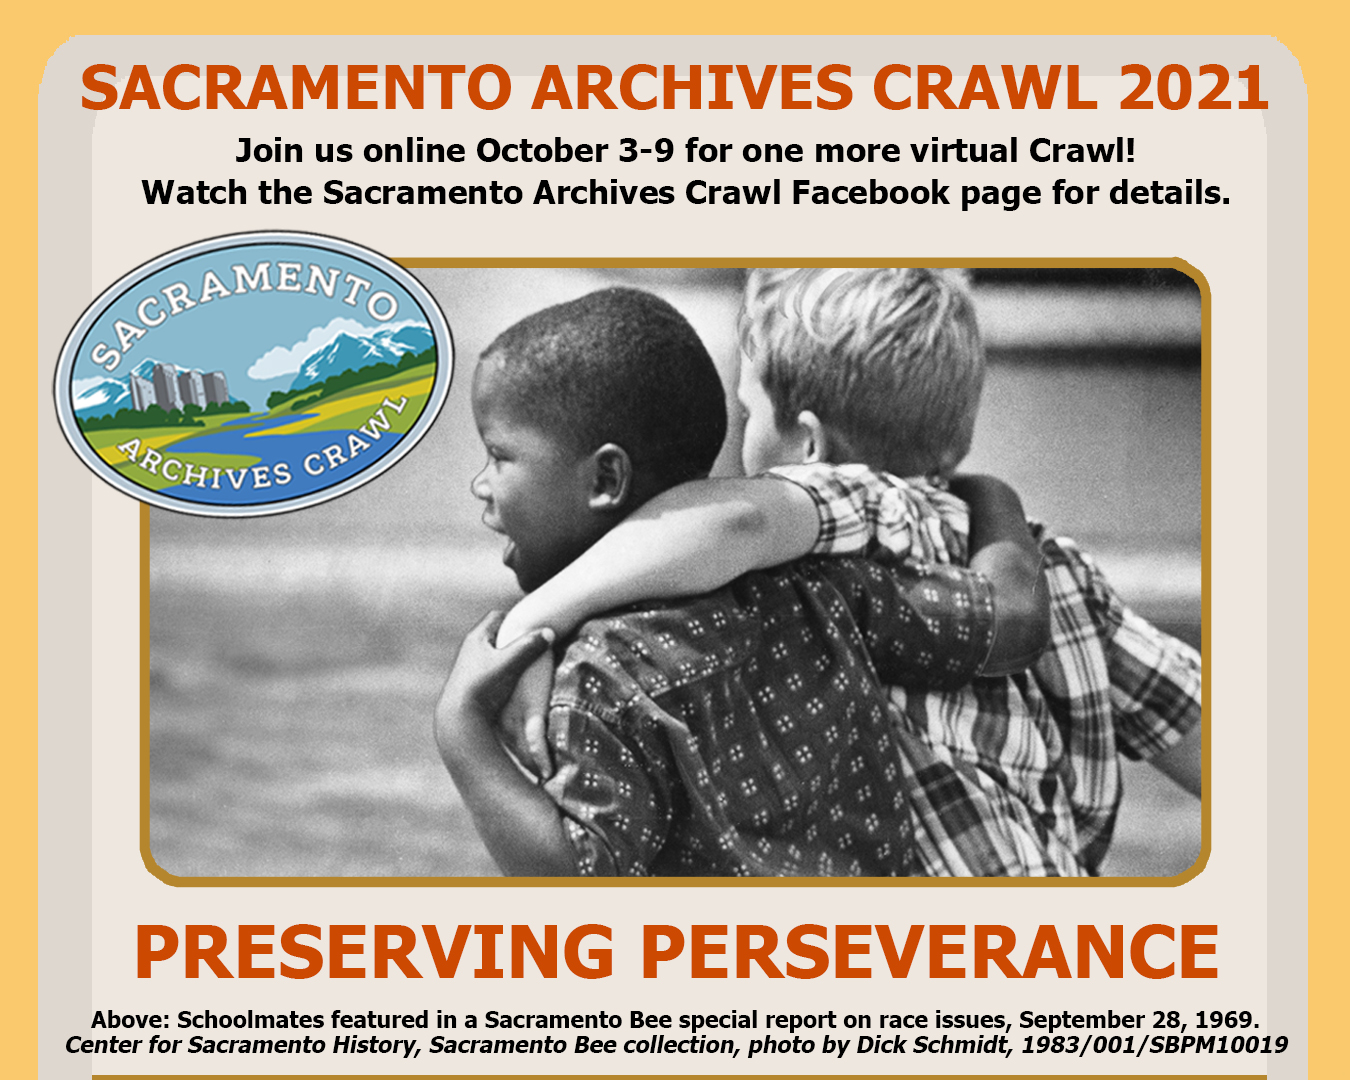 Sacramento Archives Crawl 2021 Poster Preserving Perseverance Join us online October 3-9 for one more virtual Crawl! Watch the Sacramento Archives Crawl Facebook page for details. Image of  two schoolmates featured in a Sacramento Bee special report on race issues, September28, 1969. Center for Sacramento History, Sacramento Bee collection, photo by Dick Schmidt, 1983/001/SBPM10019.